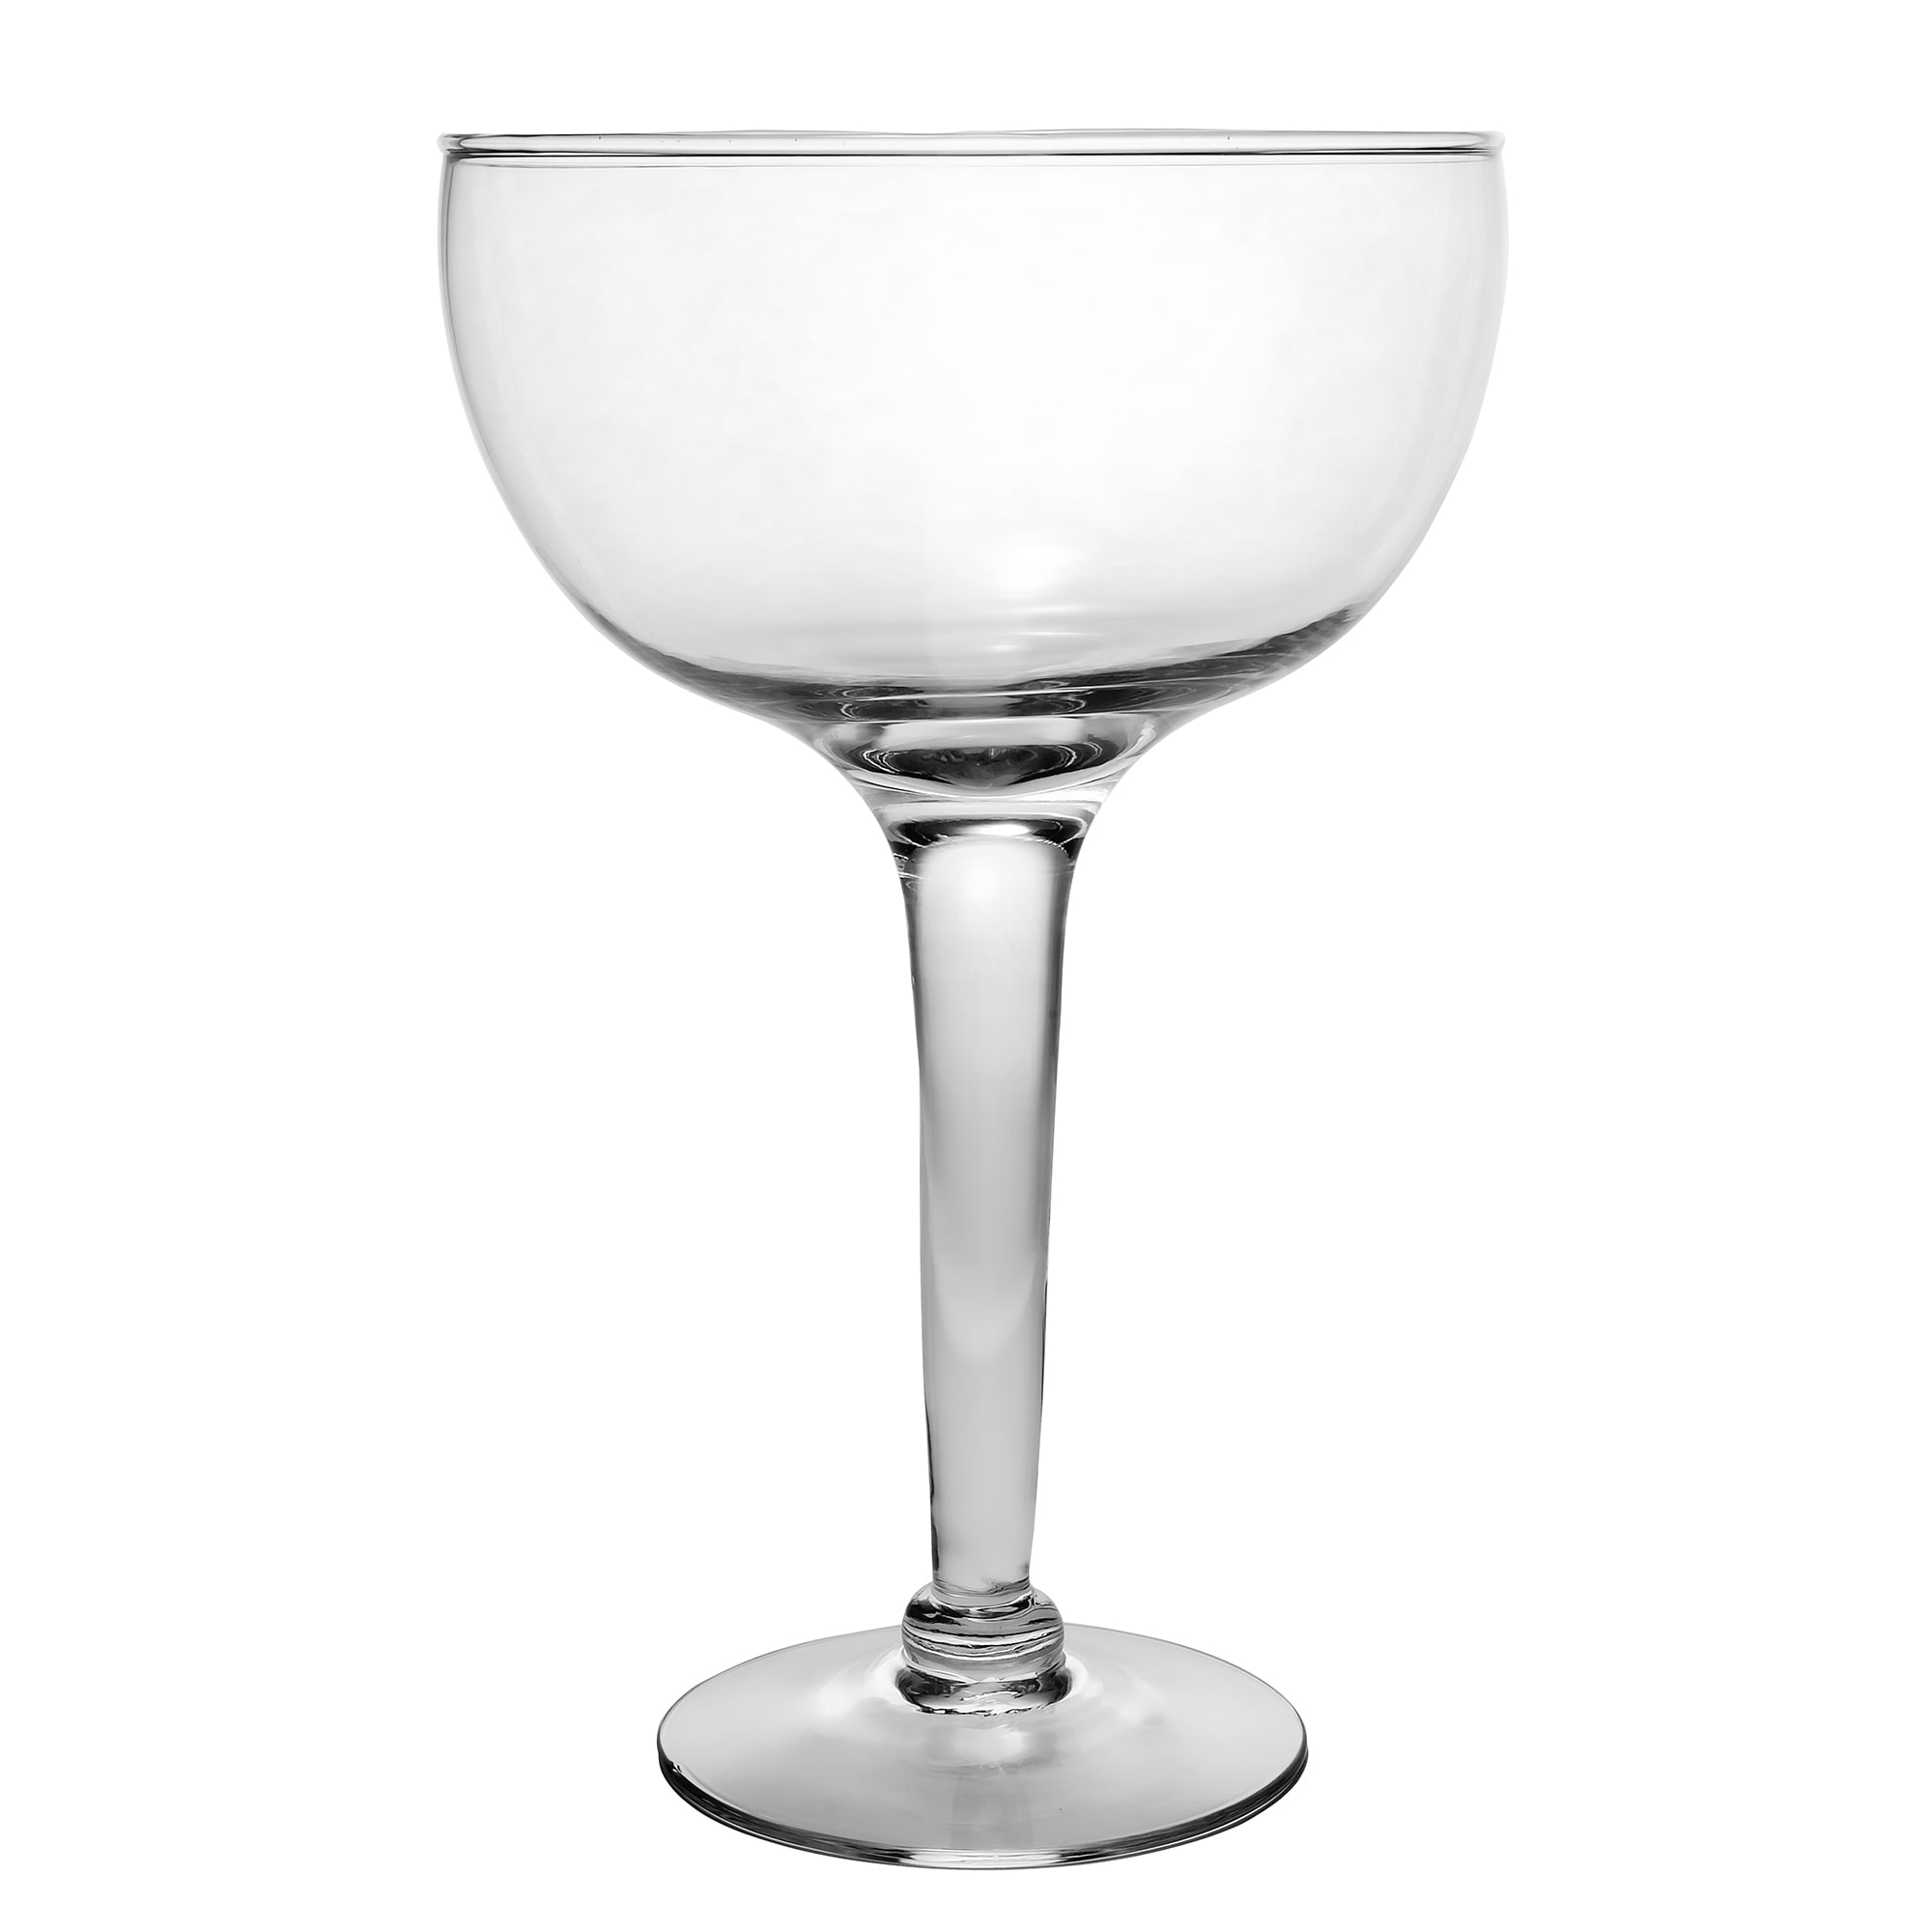 Libbey 3403 38 oz Super Bowl Glass - Safedge Rim & Foot Guarantee